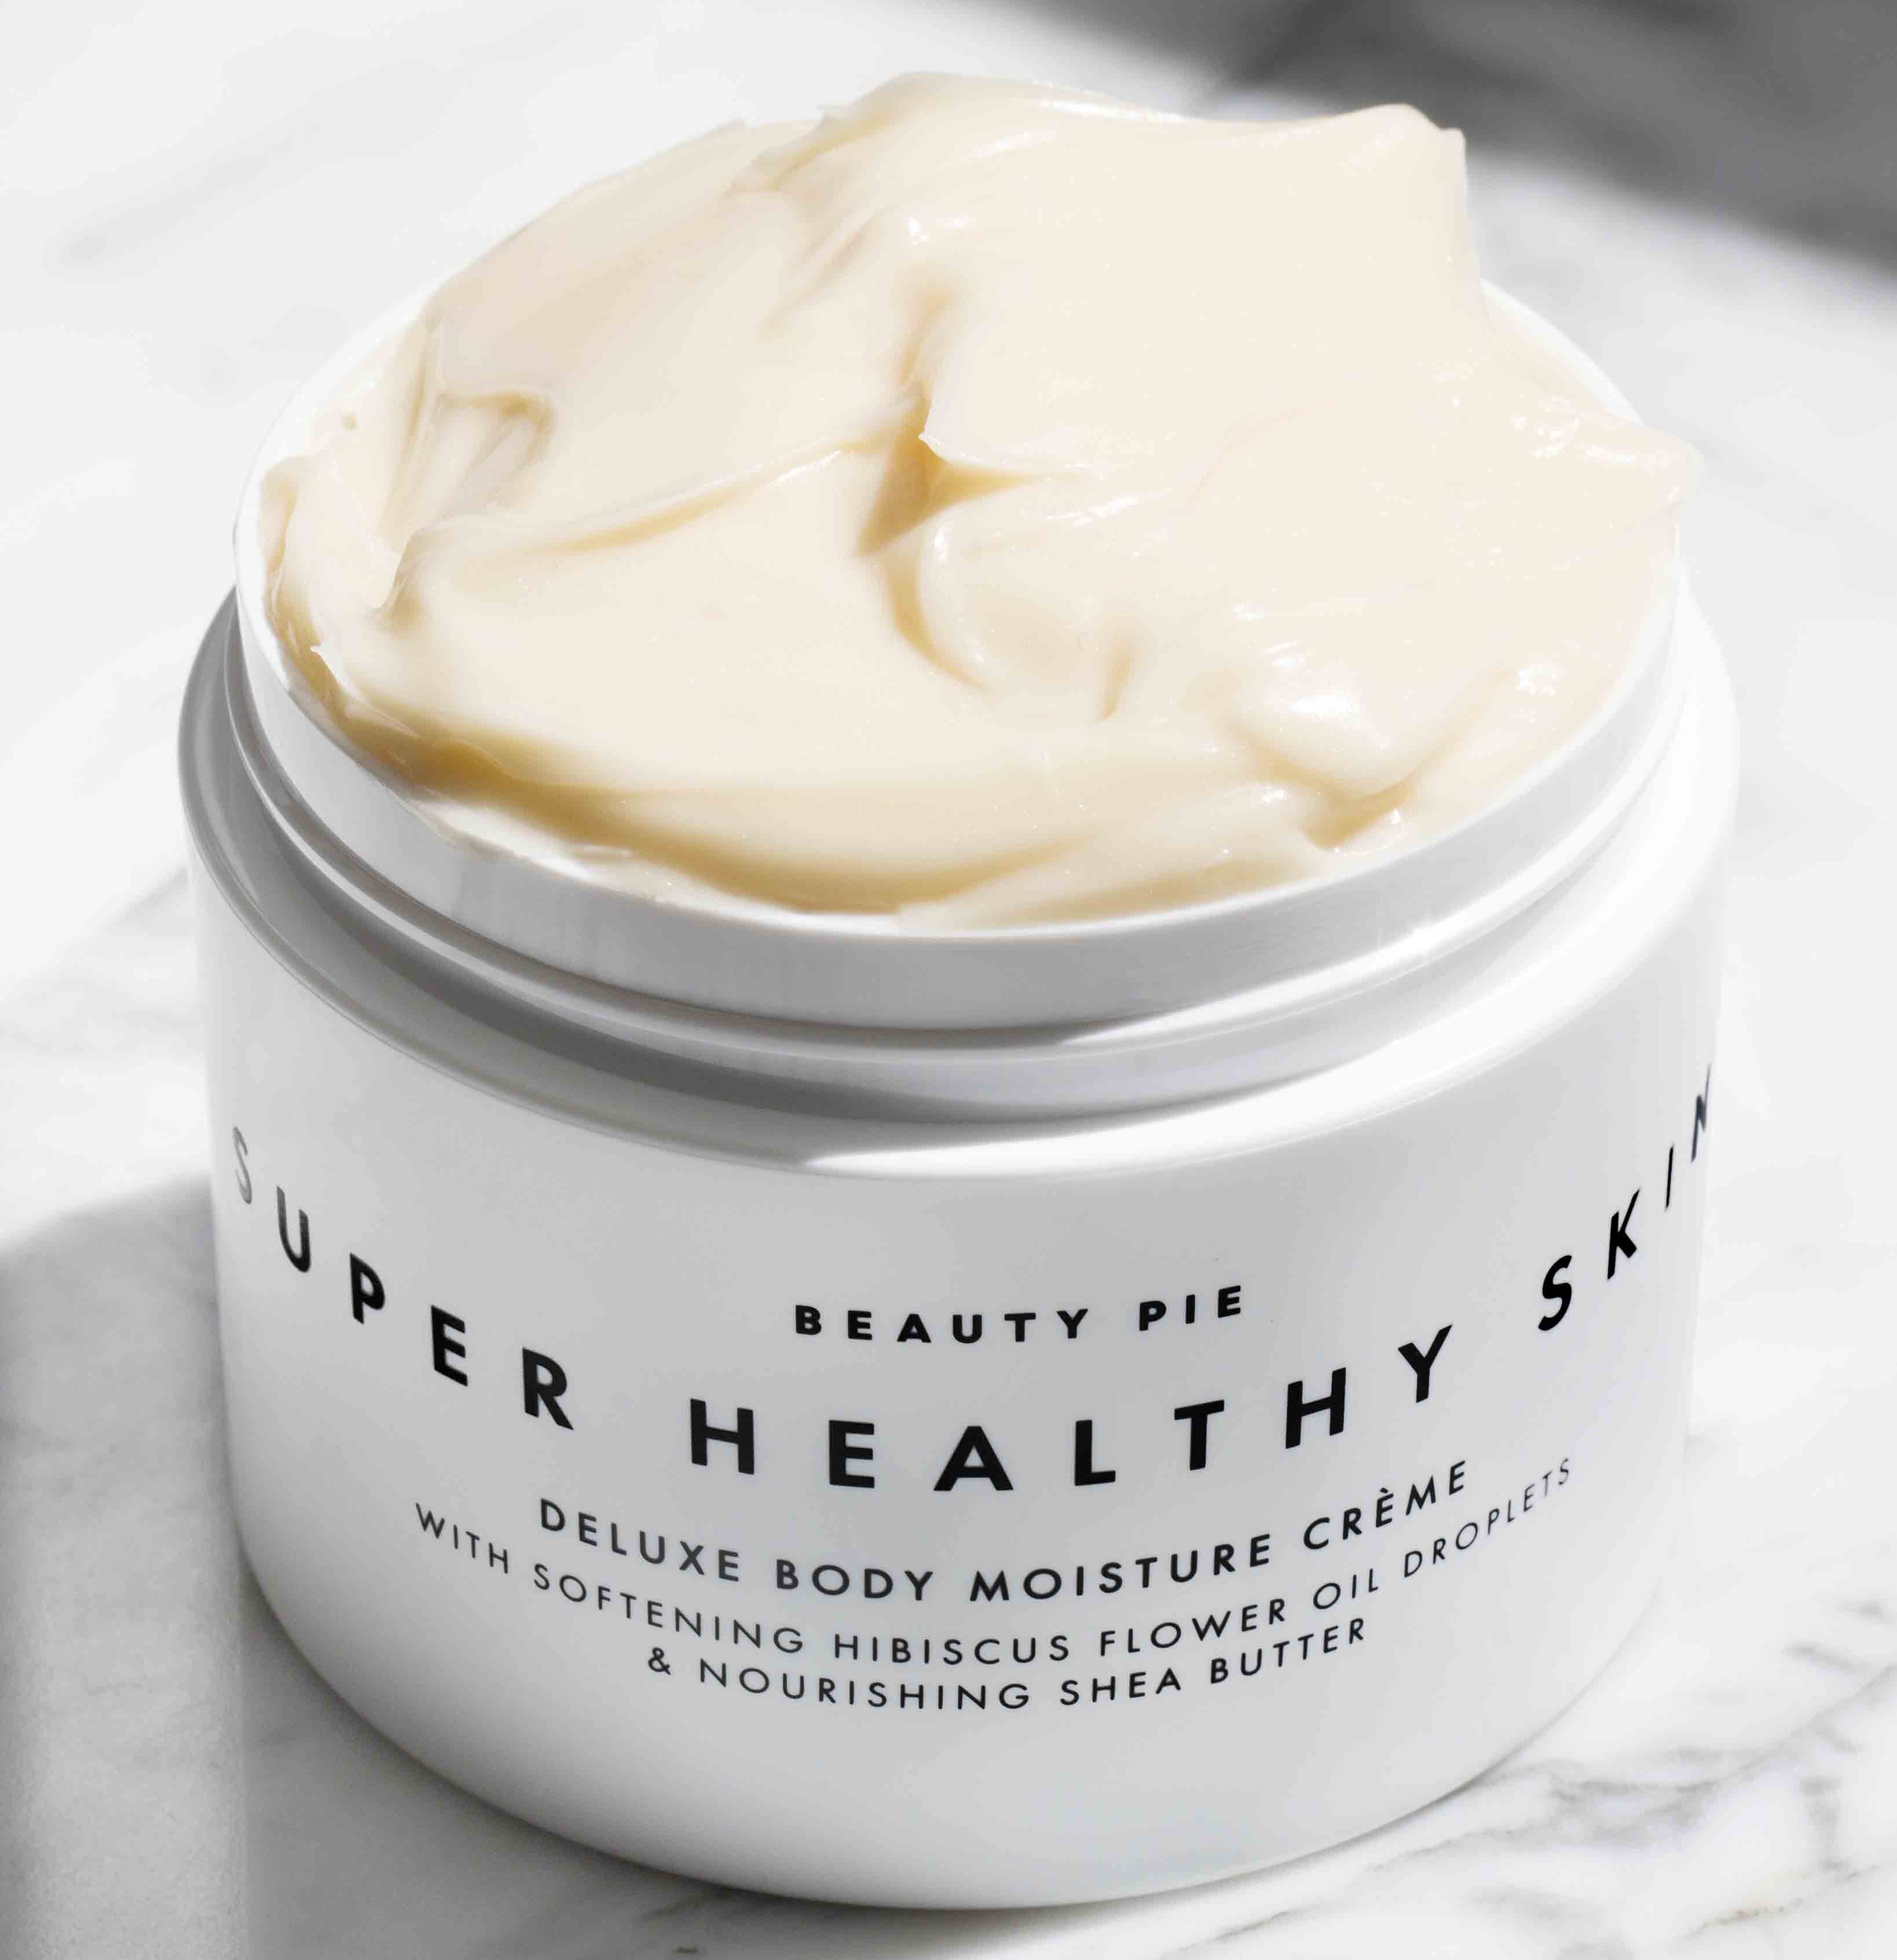 SUPER HEALTHY SKIN™ DELUXE MOISTURE BODY CRÈME